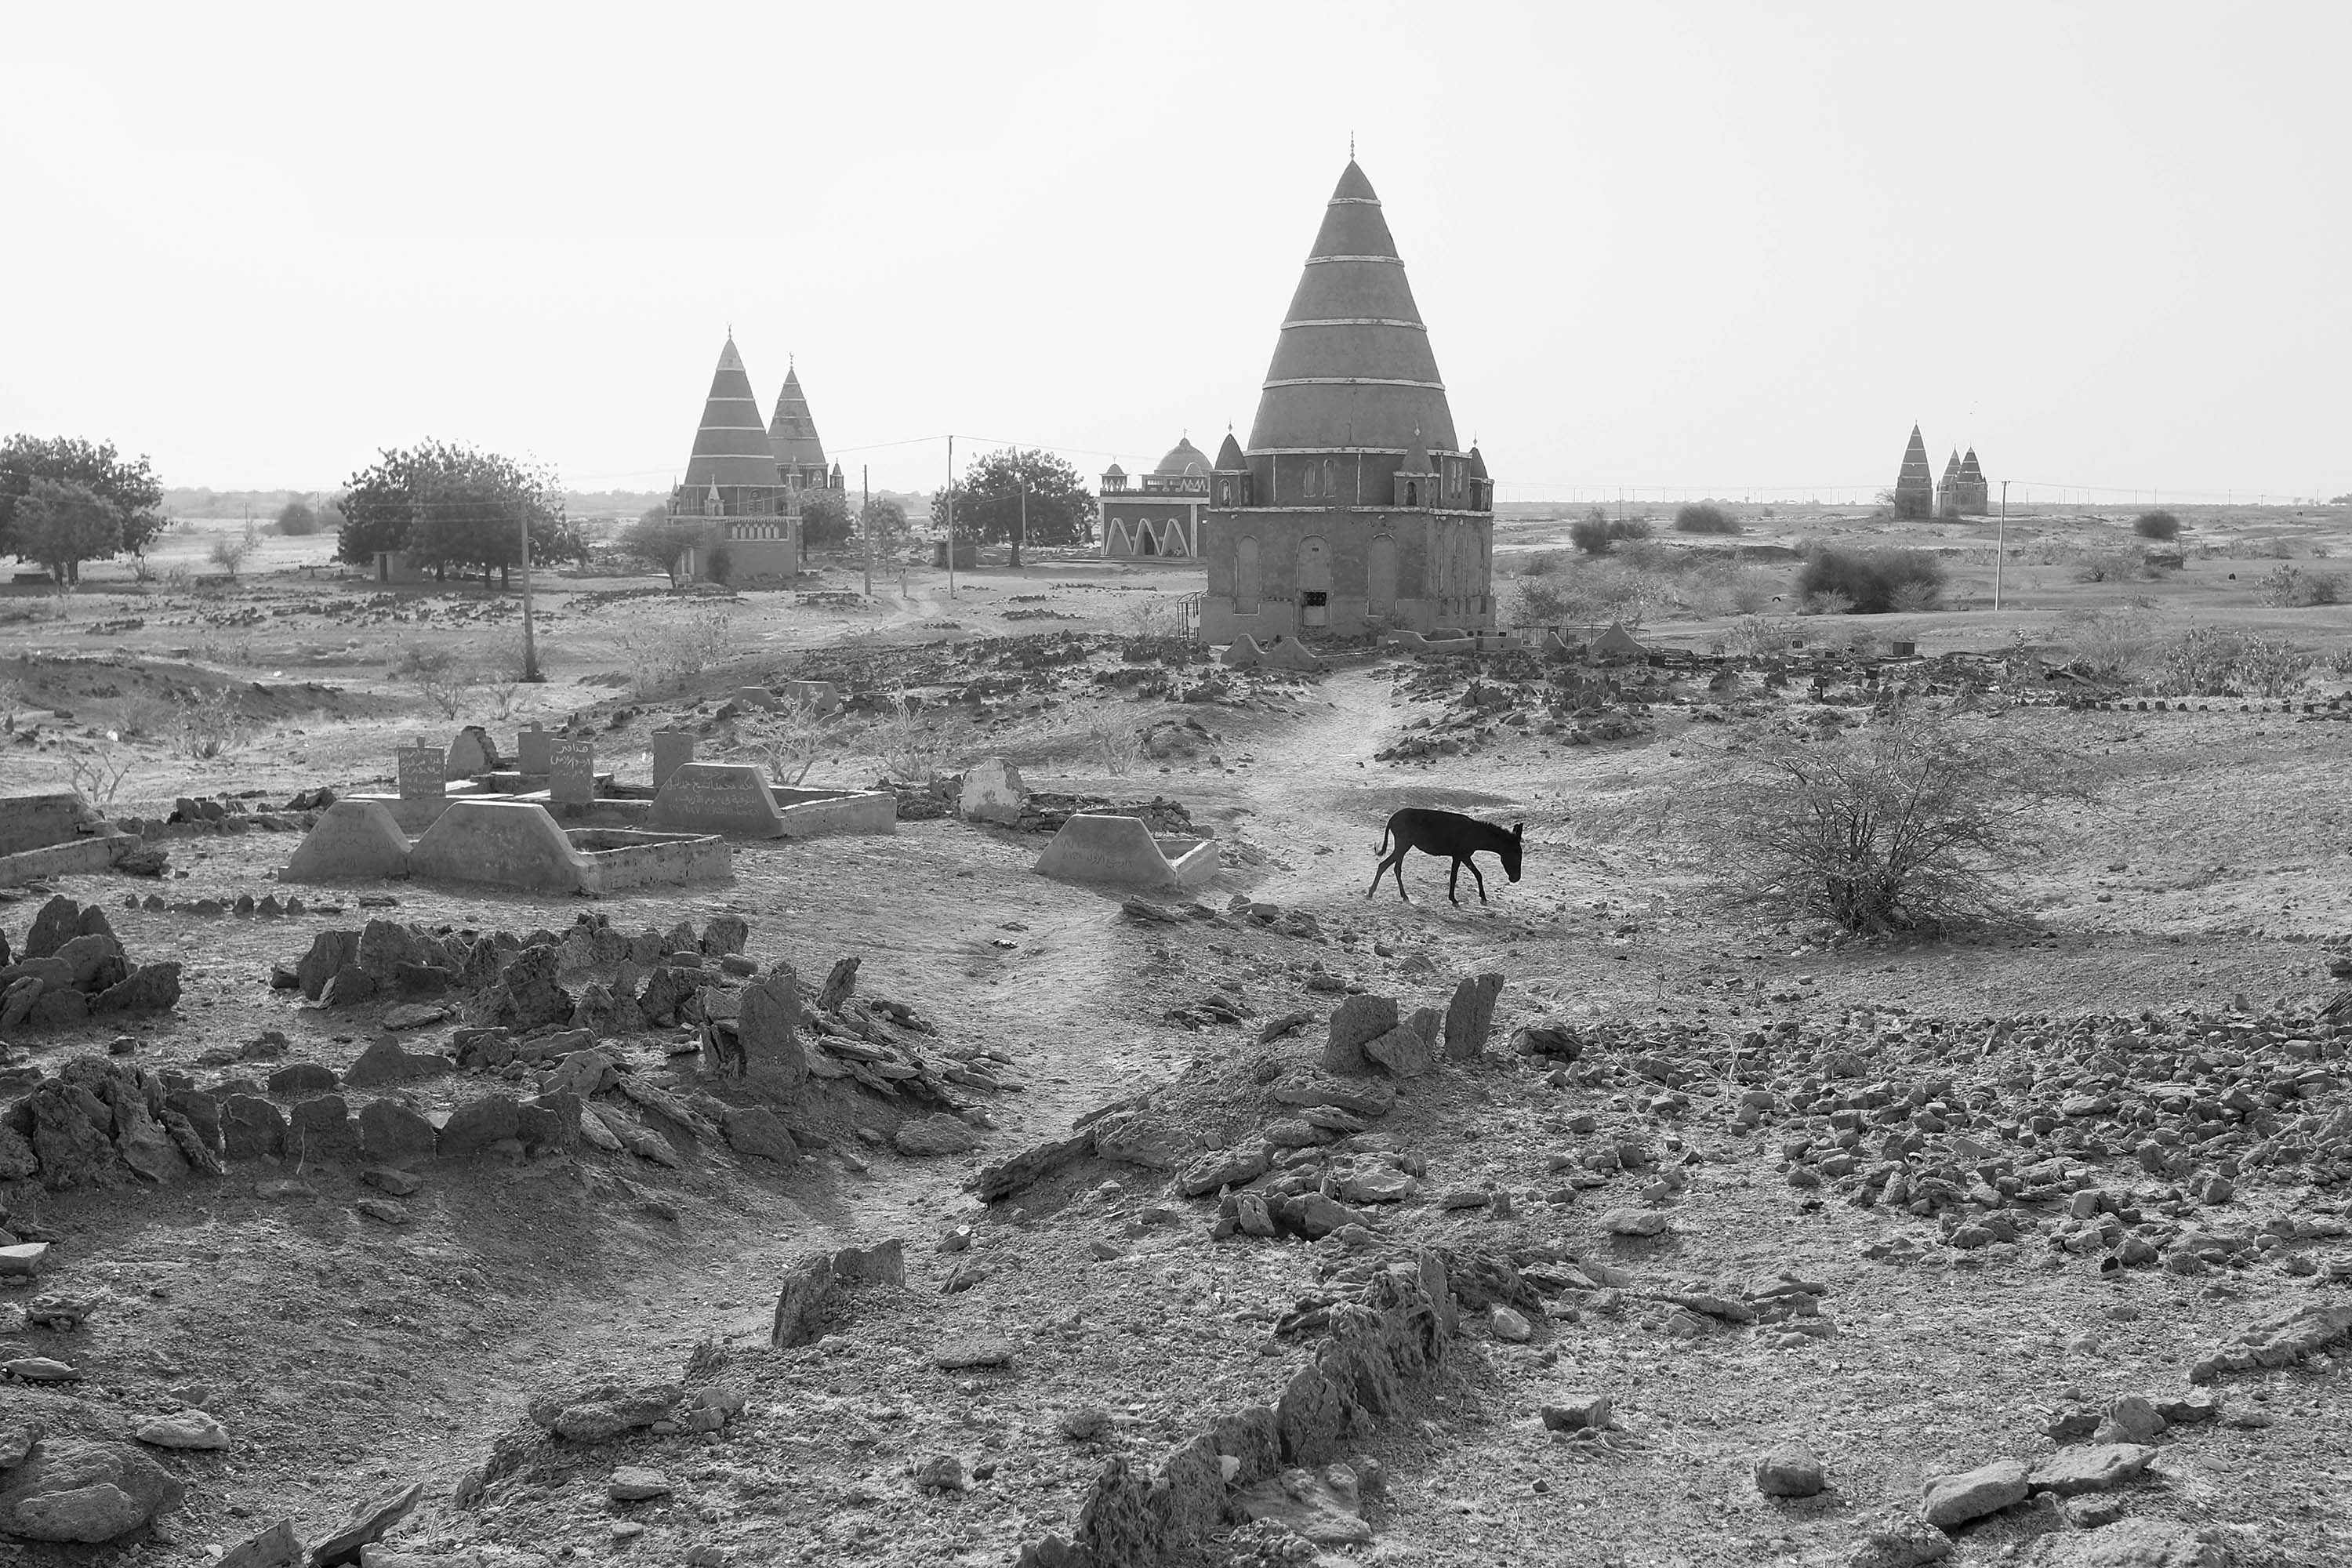 14. Sufi tombs near the village of Abu Haraz - one of the most important religious sites of Sufism in Sudan. 2017